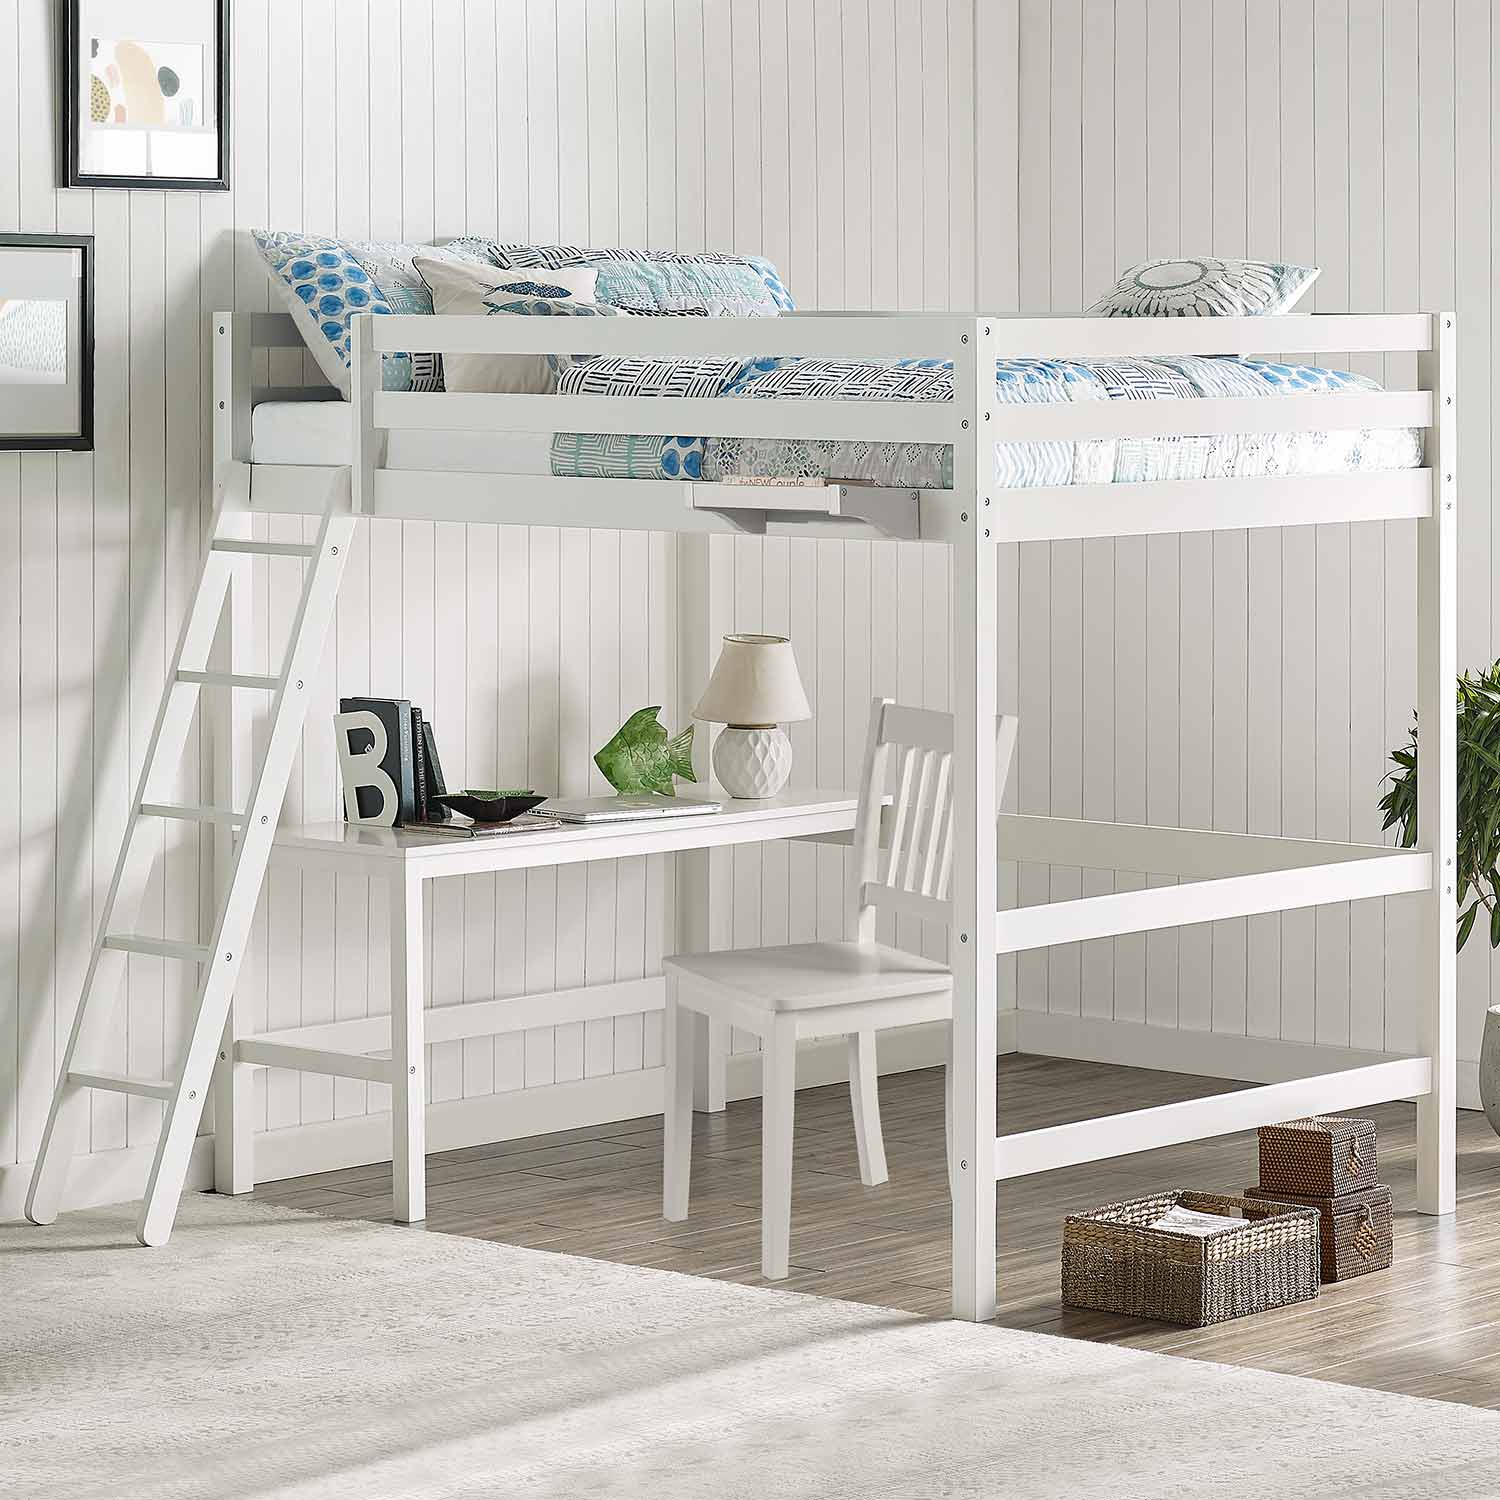 Hillsdale Caspian Full Loft Bed with Chair and Hanging Nightstand - White